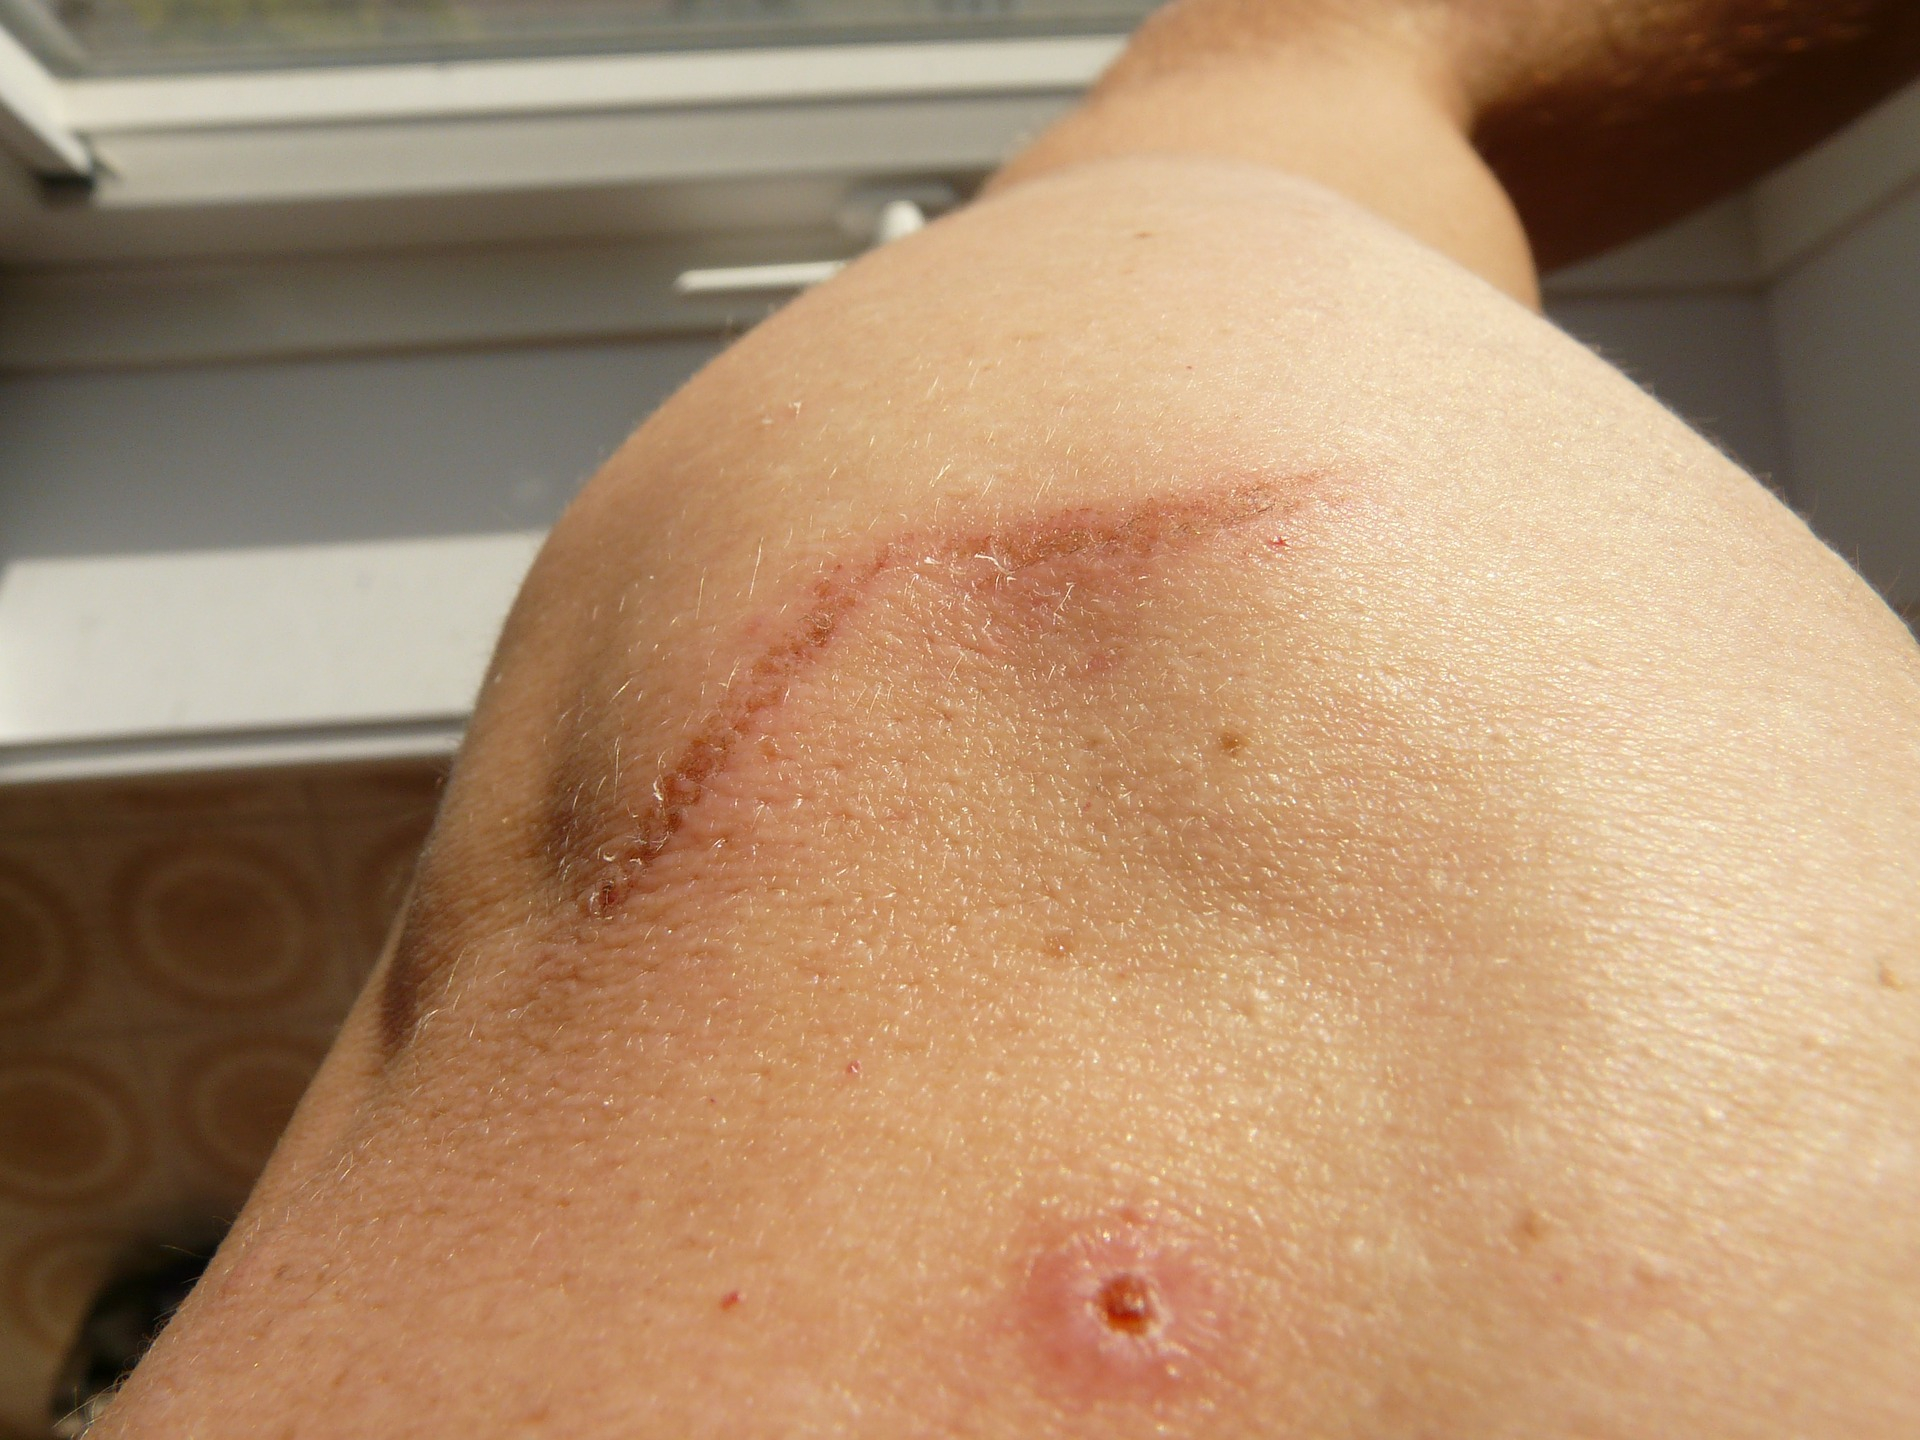 Scars may form when you get cosmetic surgery